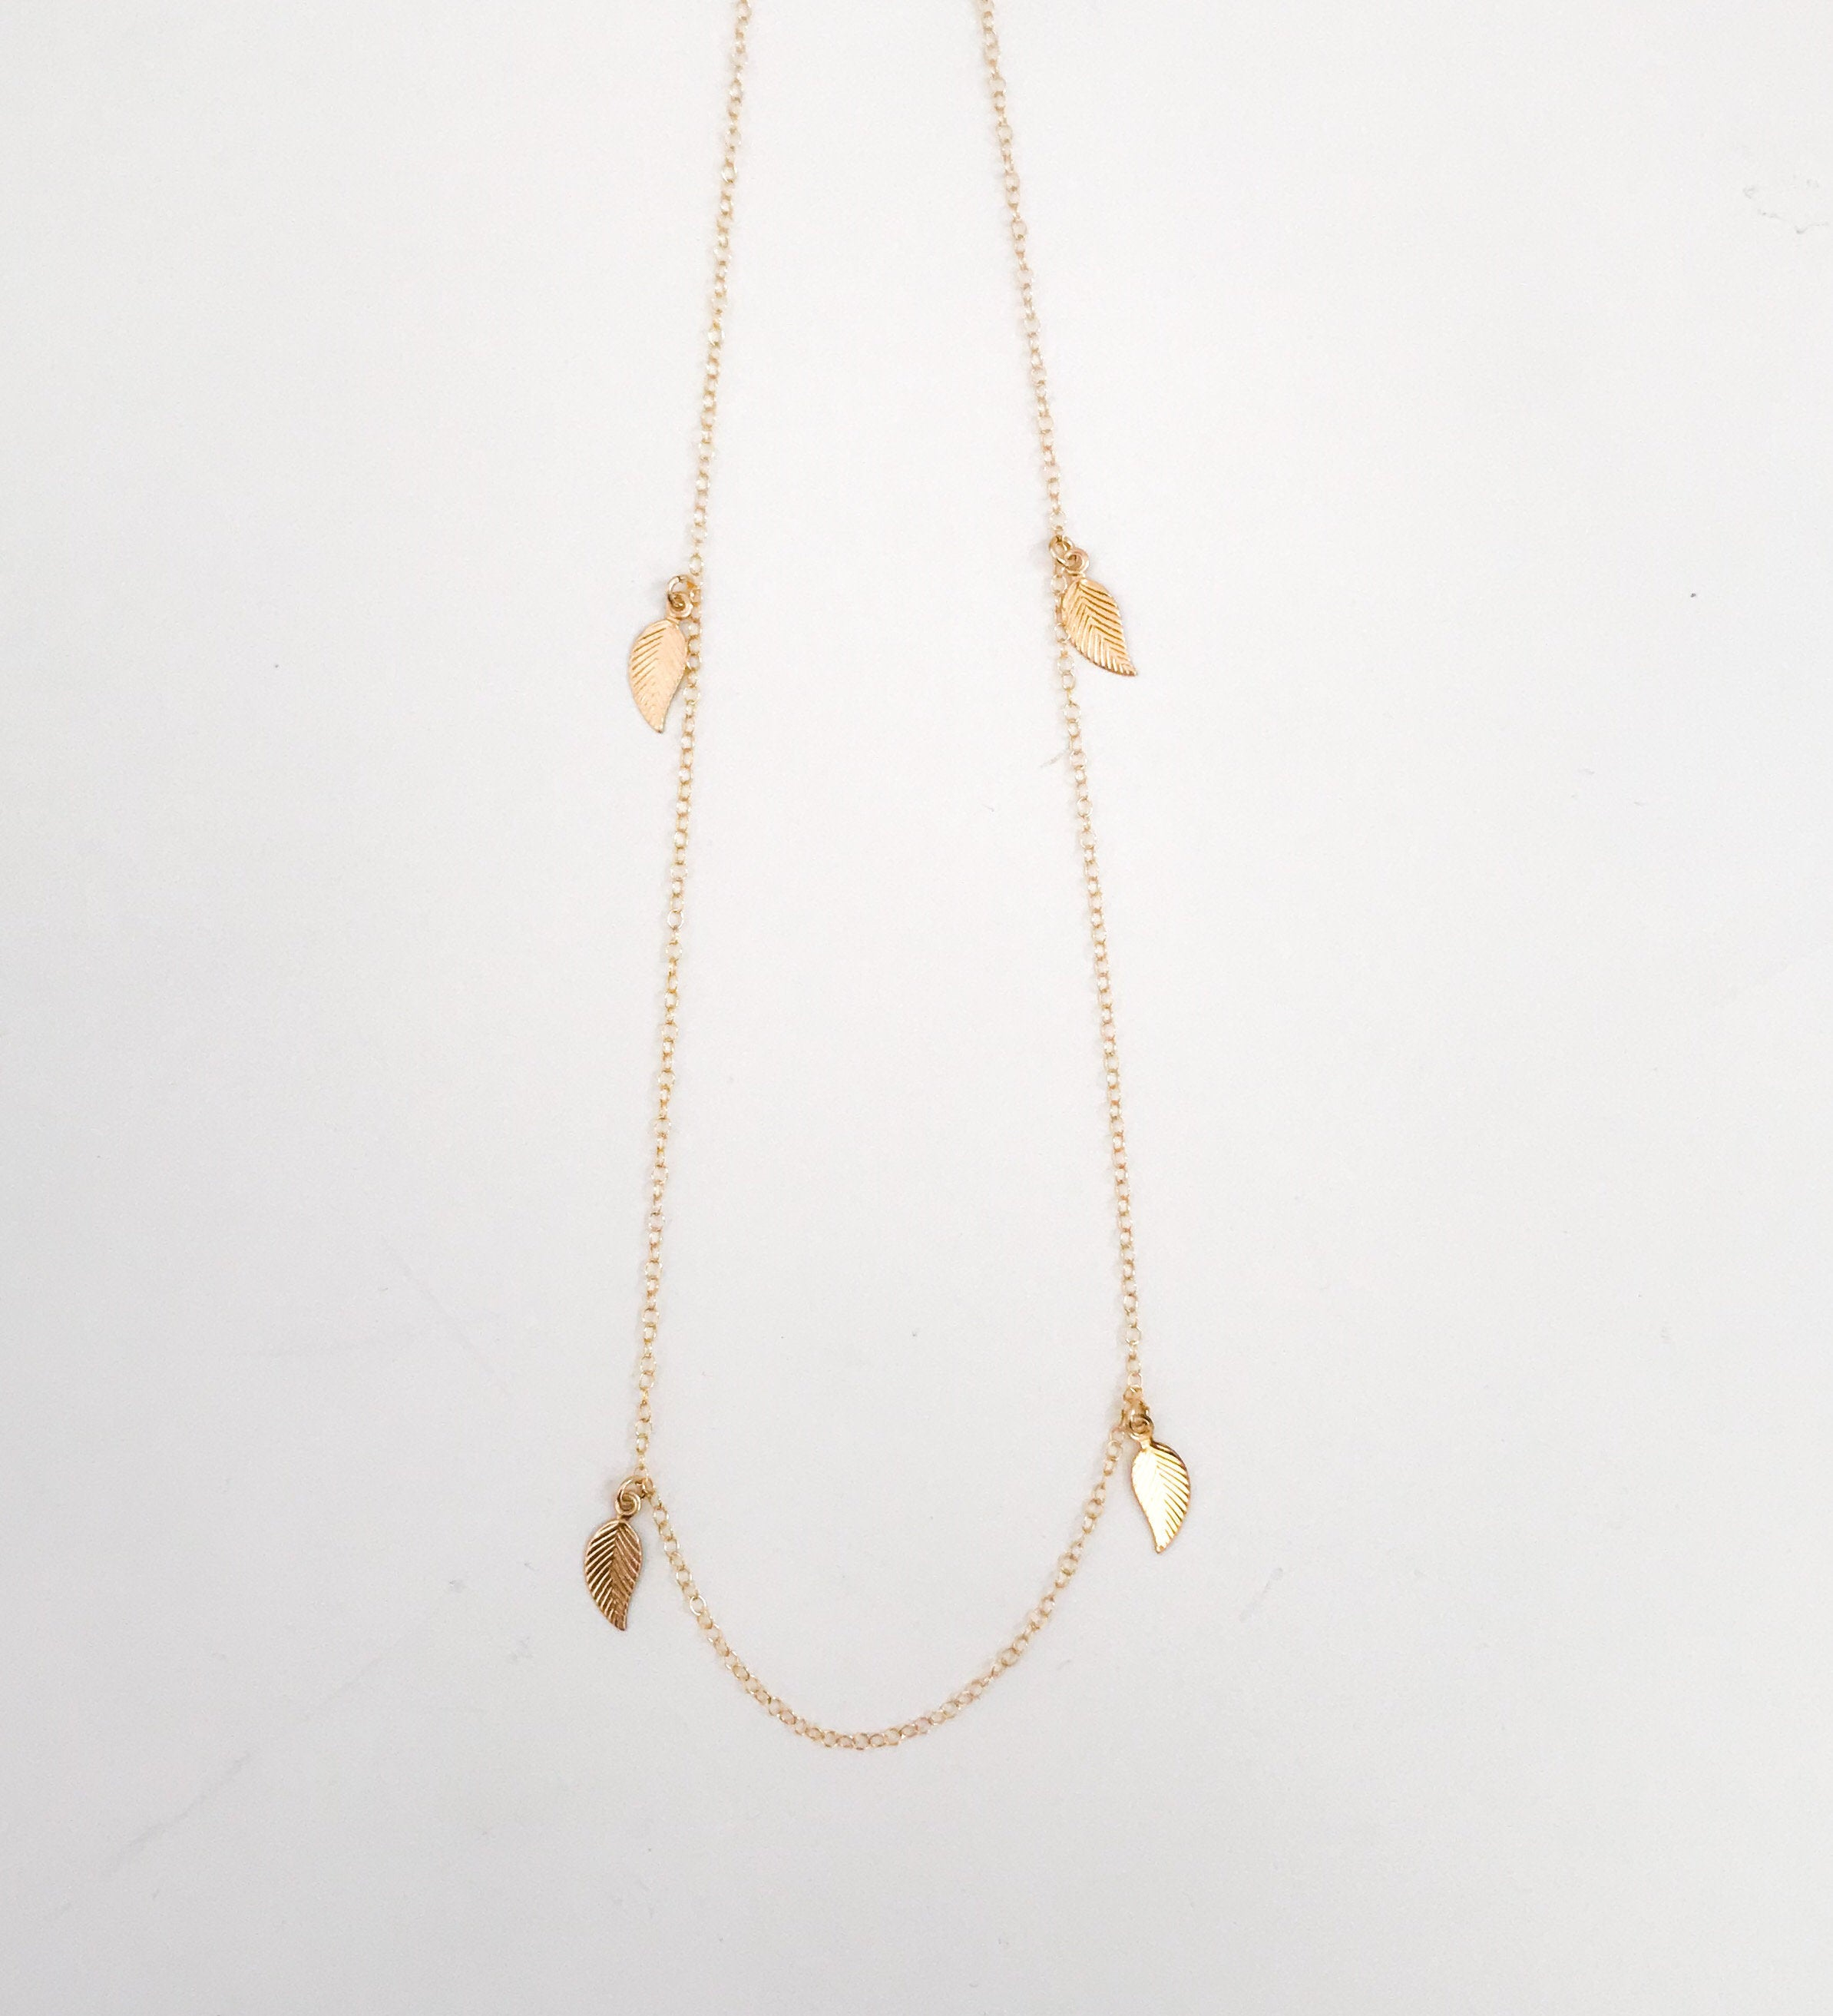 Gold leaf charm necklace/ Tiny leaf charm short necklace